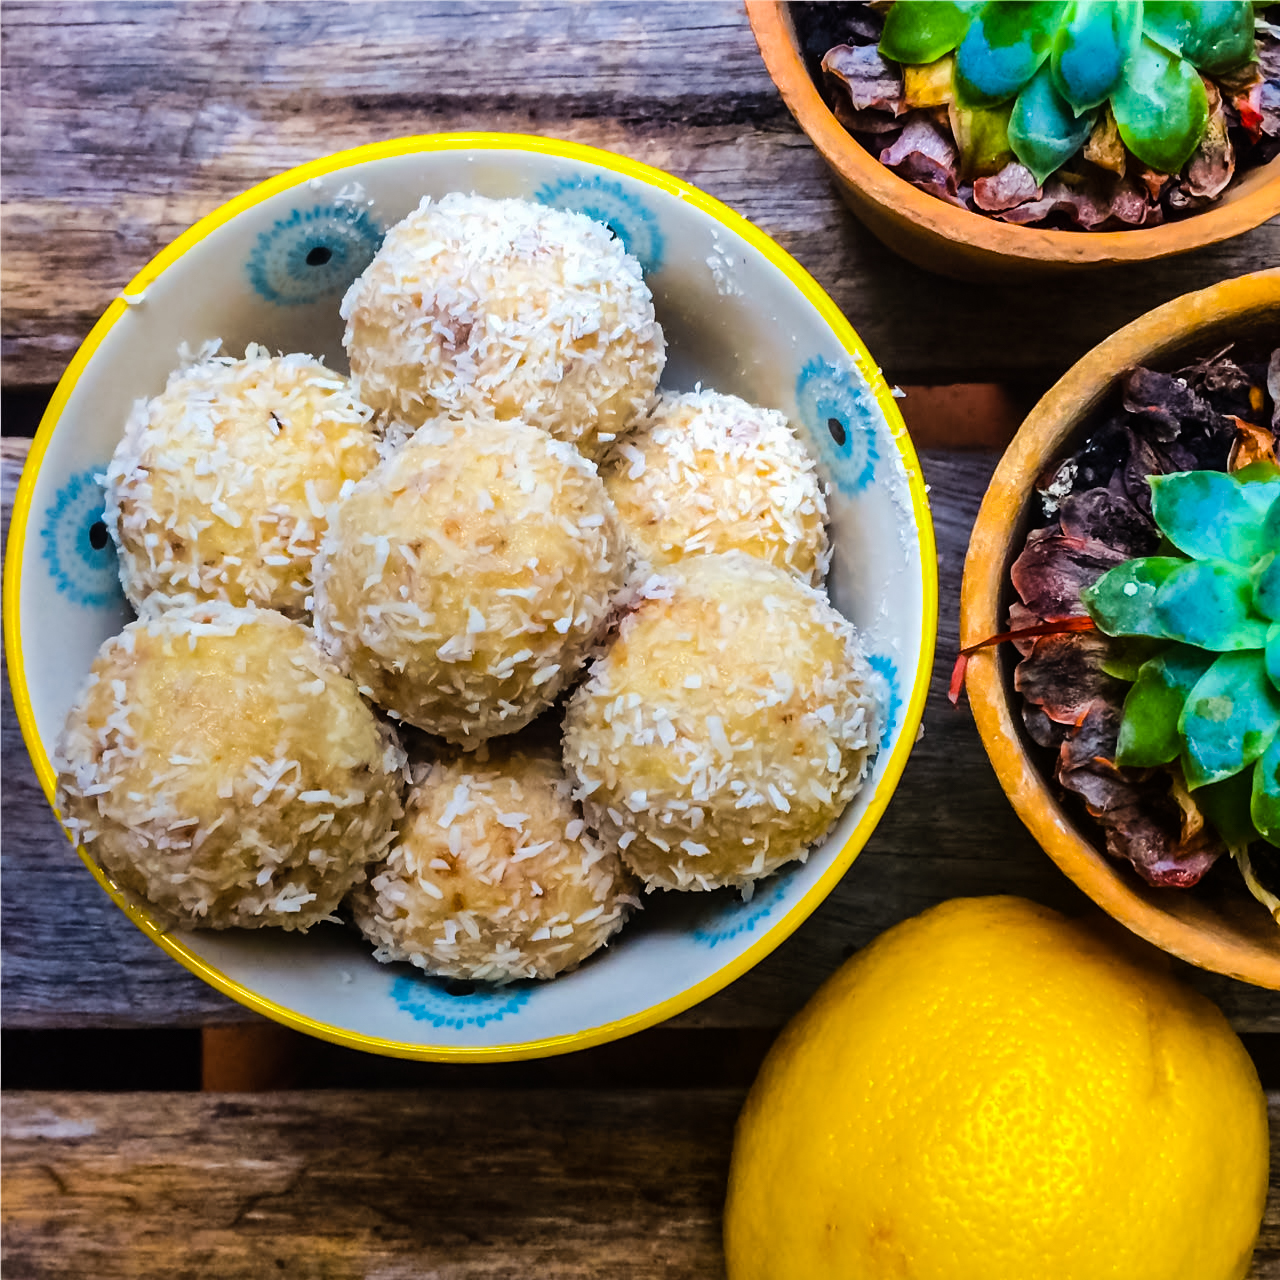 Jordanna Levin's divine bliss balls were a hit at Lunar Nights at the Bondi Yoga House. Image © Jordanna Levin